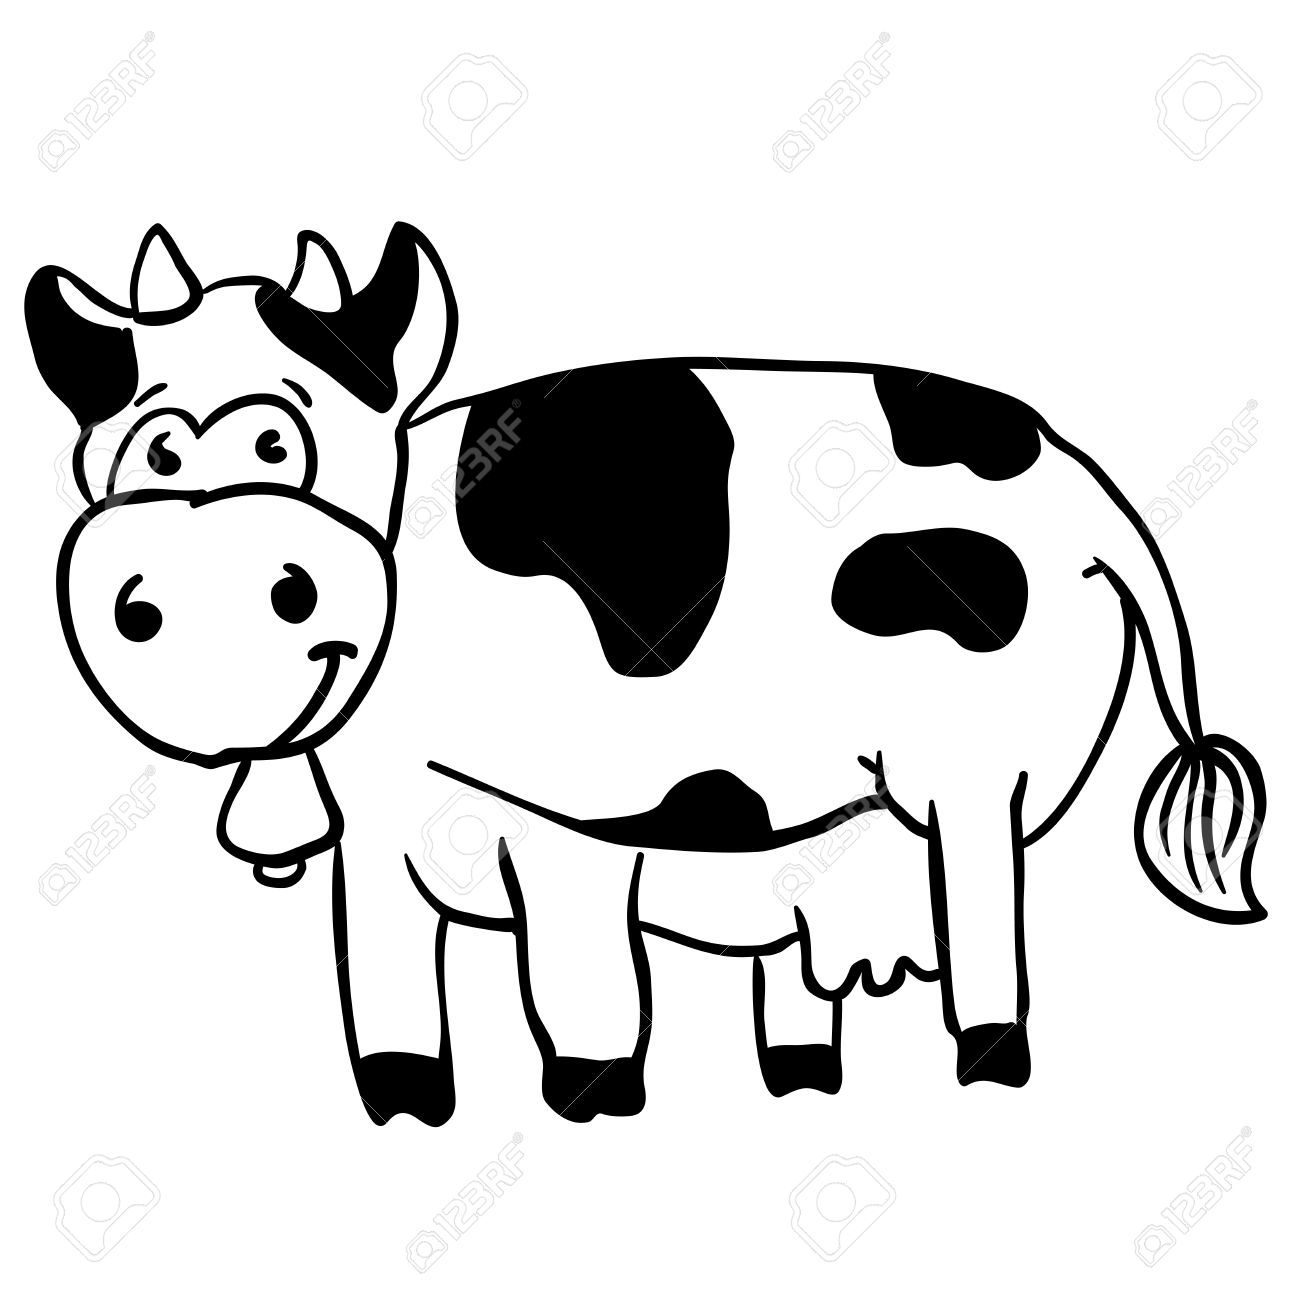 1300x1300 Simple Black And White Cow Cartoon Royalty Free Cliparts, Vectors